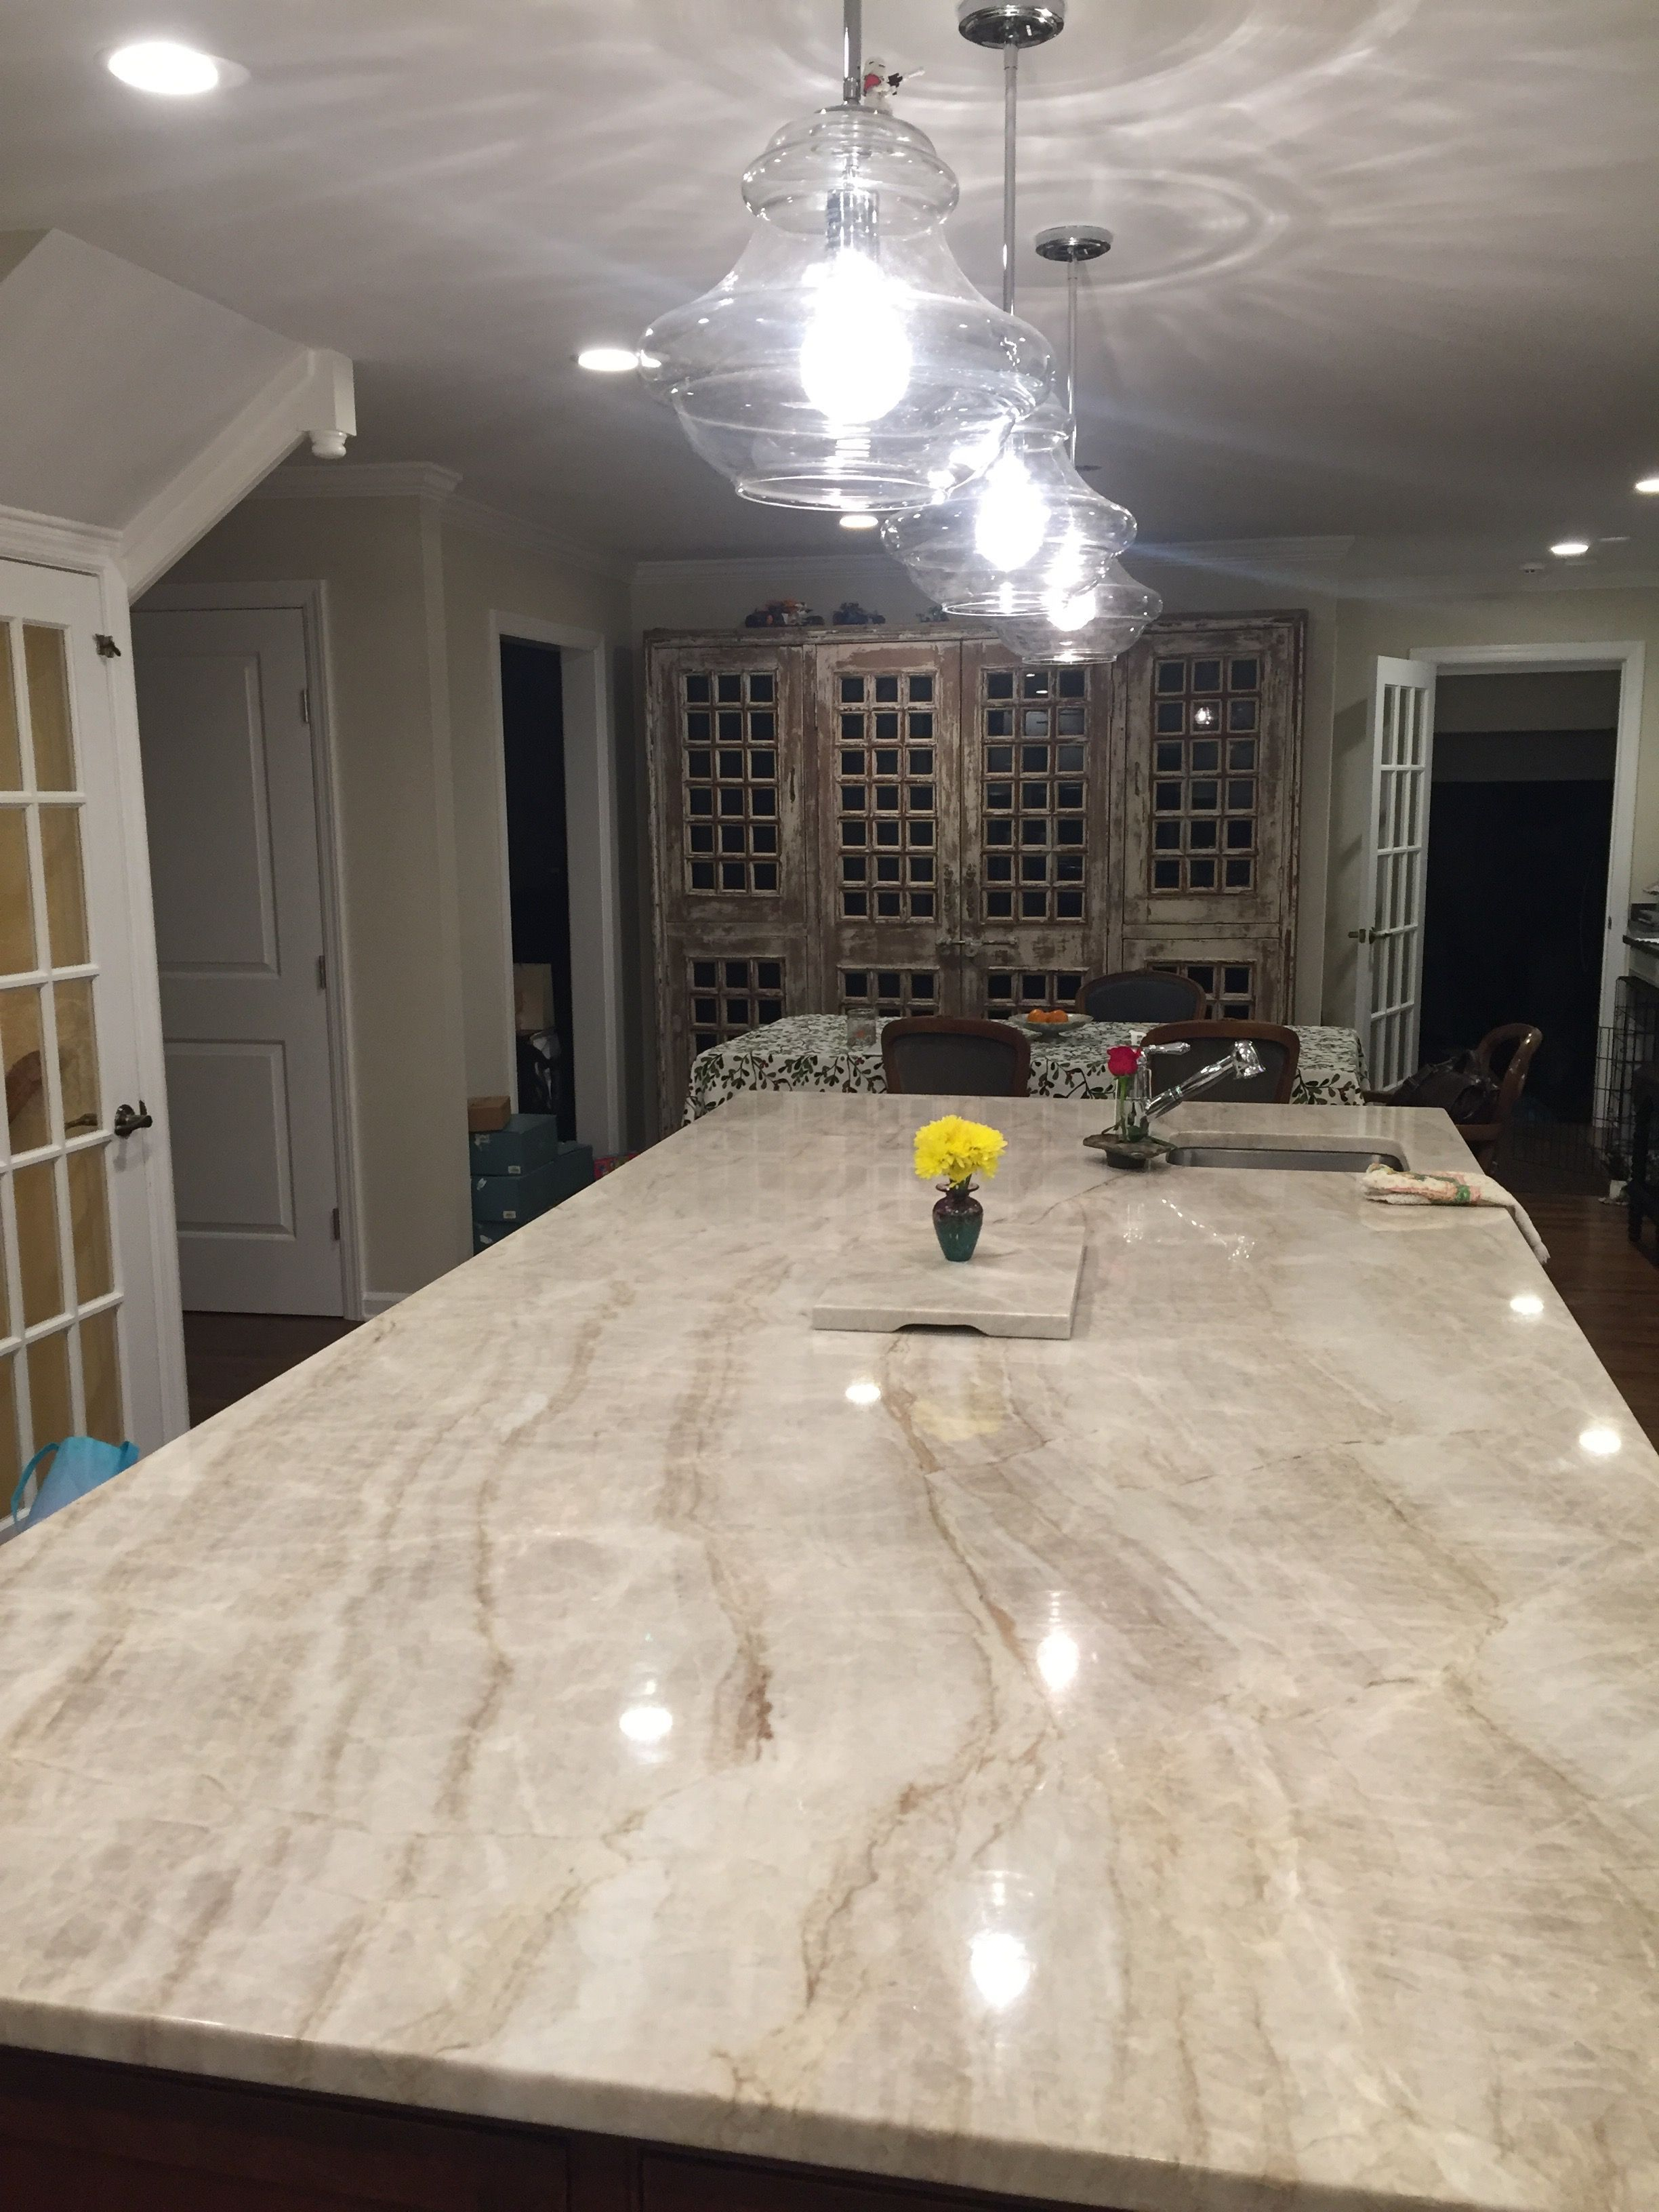 Secrets About Quartz Countertops And How To Install It Step By